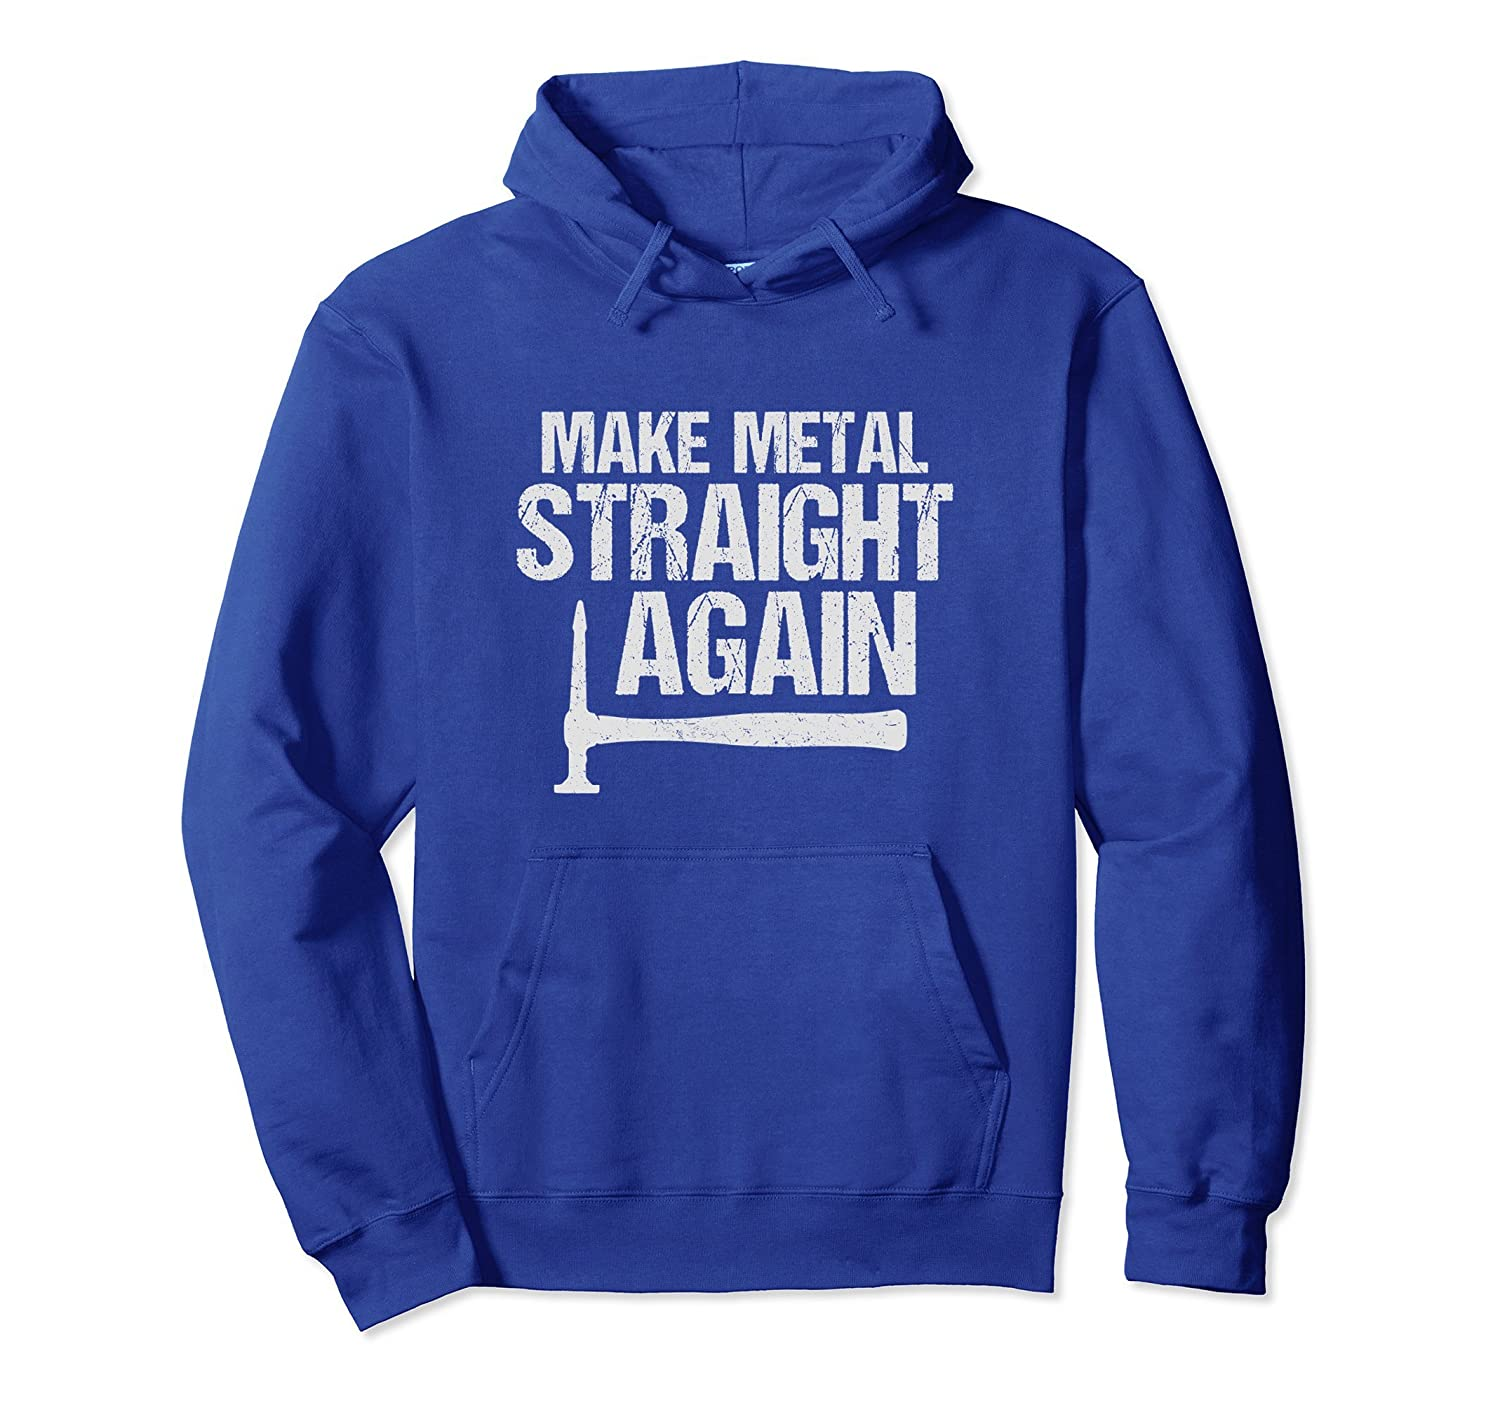 Auto Body Hoodie - Make Metal Straight Again for Body Men-TH